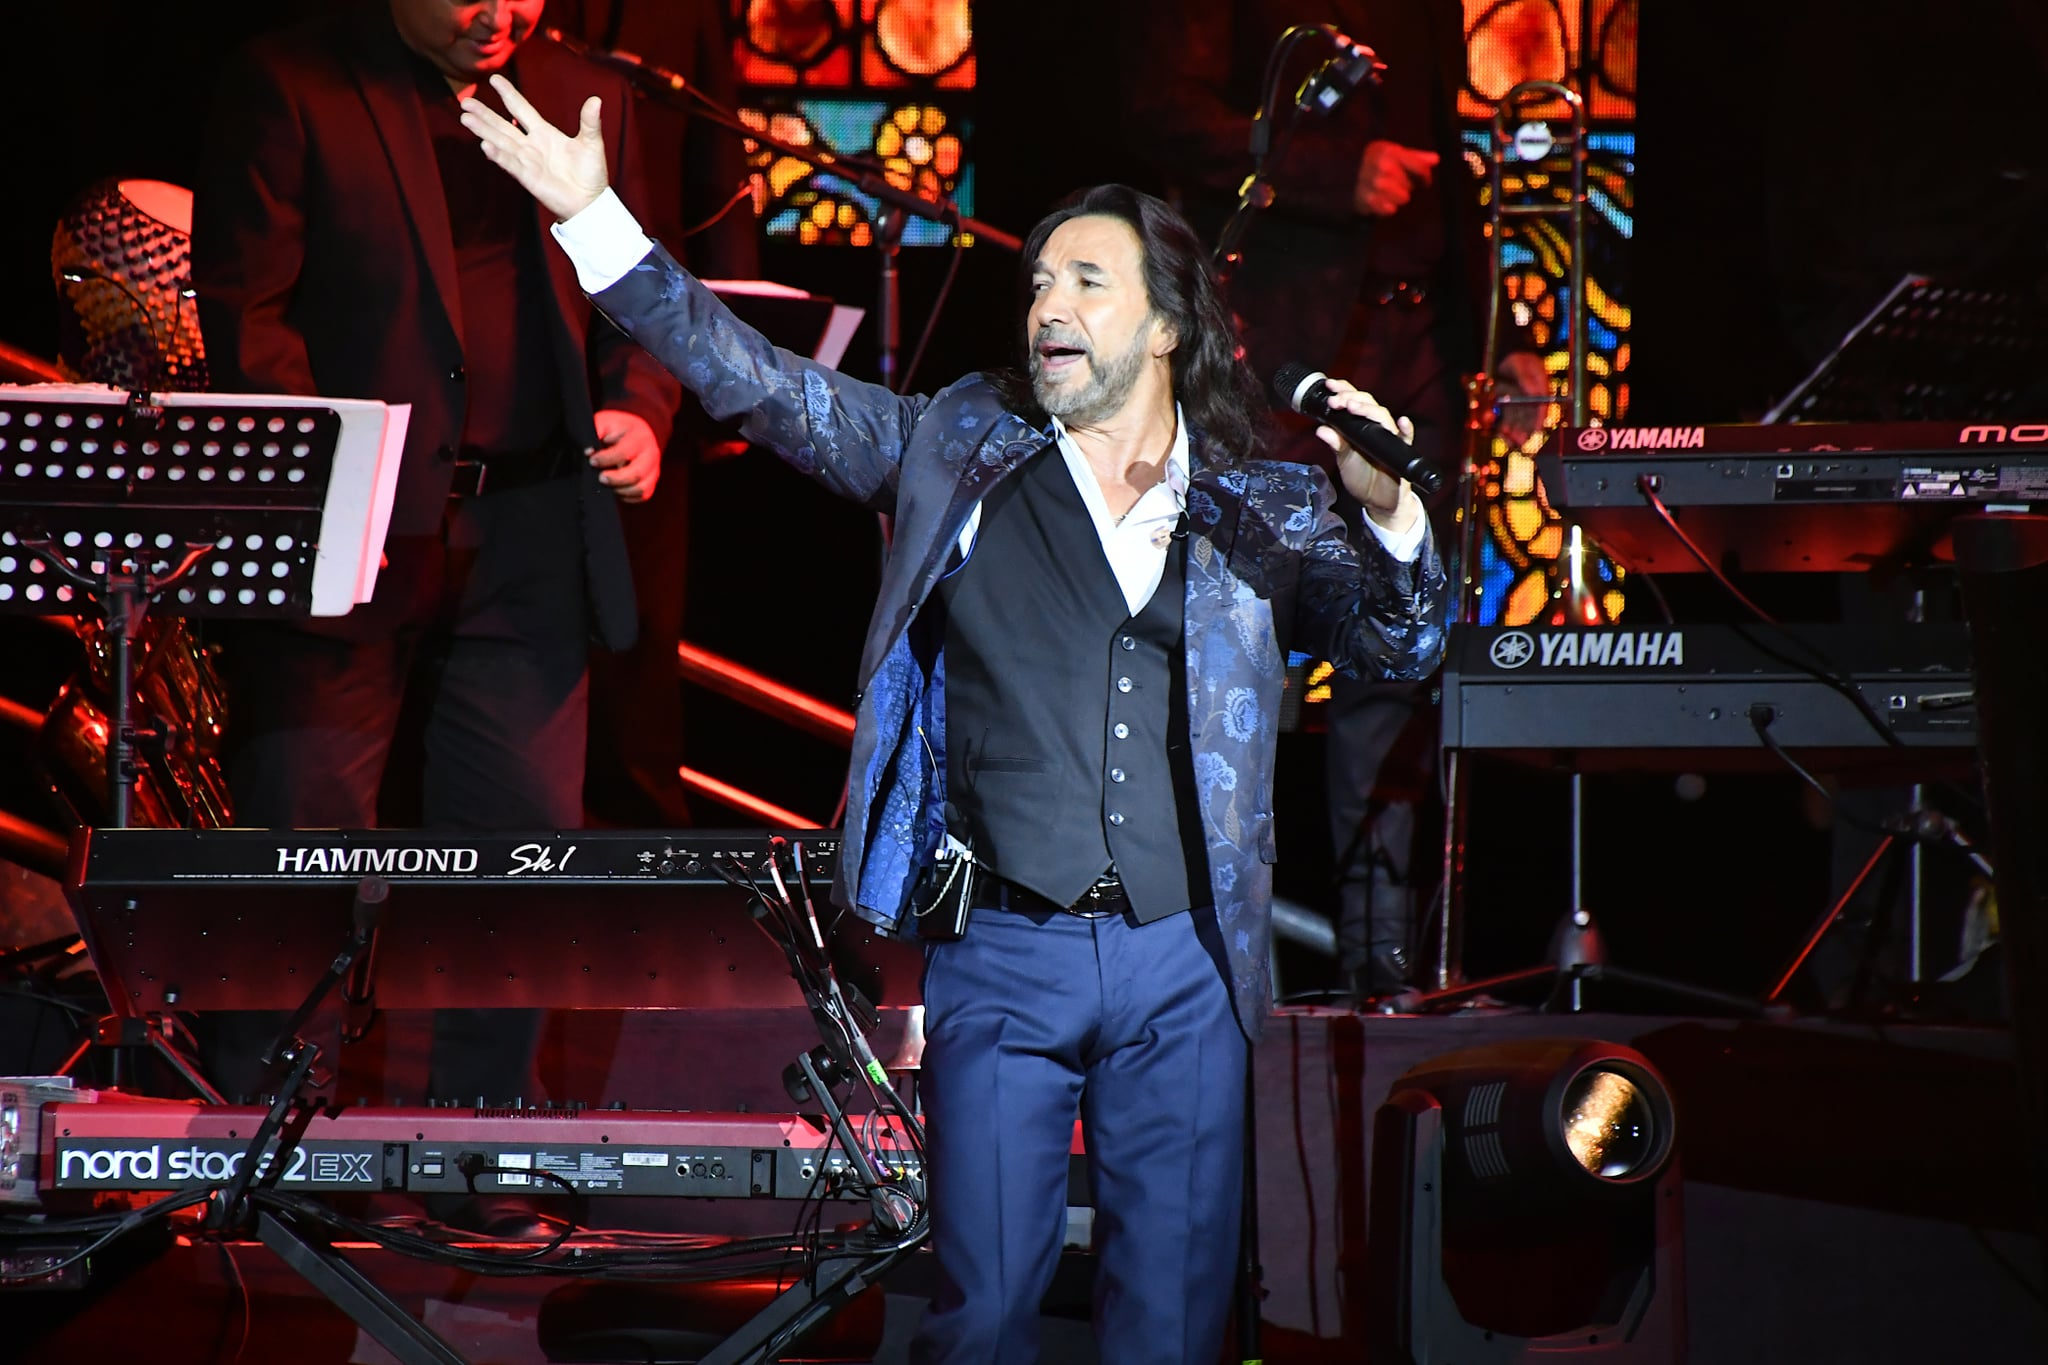 LAS VEGAS, NV - SEPTEMBER 15:  Recording artist Marco Antonio Solis performs at the Mandalay Bay Events Center on September 15, 2017 in Las Vegas, Nevada.  (Photo by Mindy Small/FilmMagic)